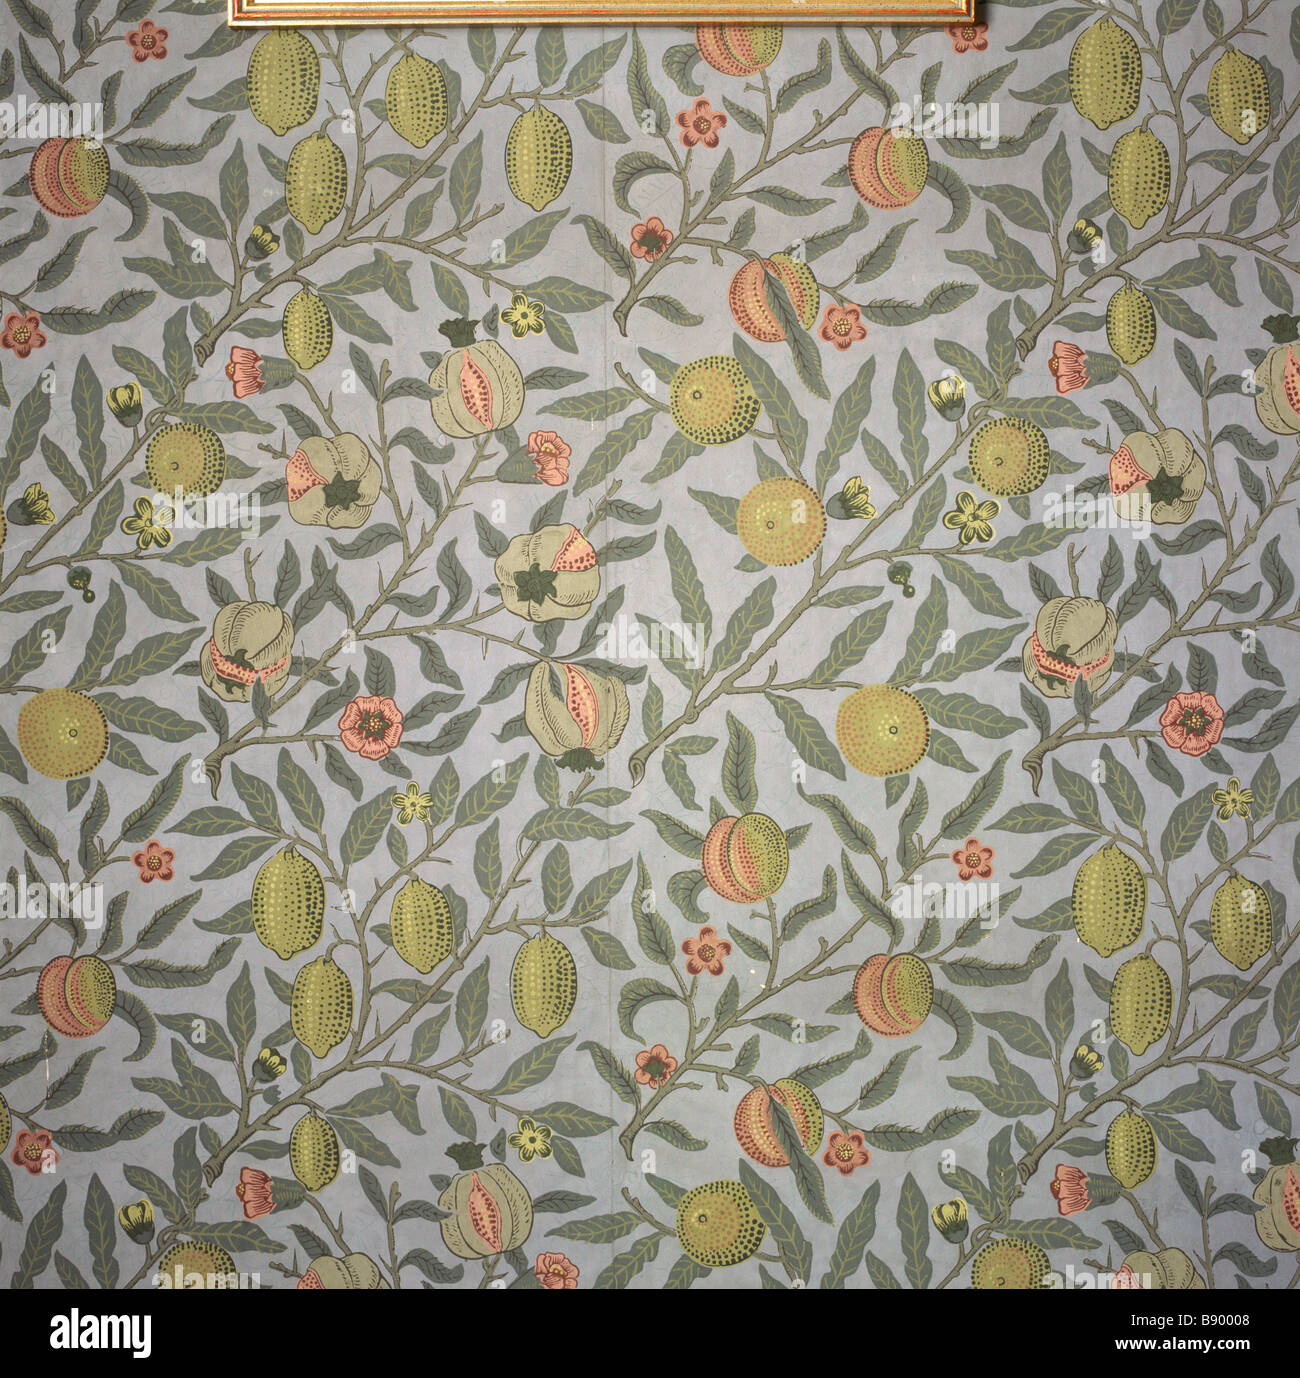 William Morris Wallpaper Stock Photos William Morris